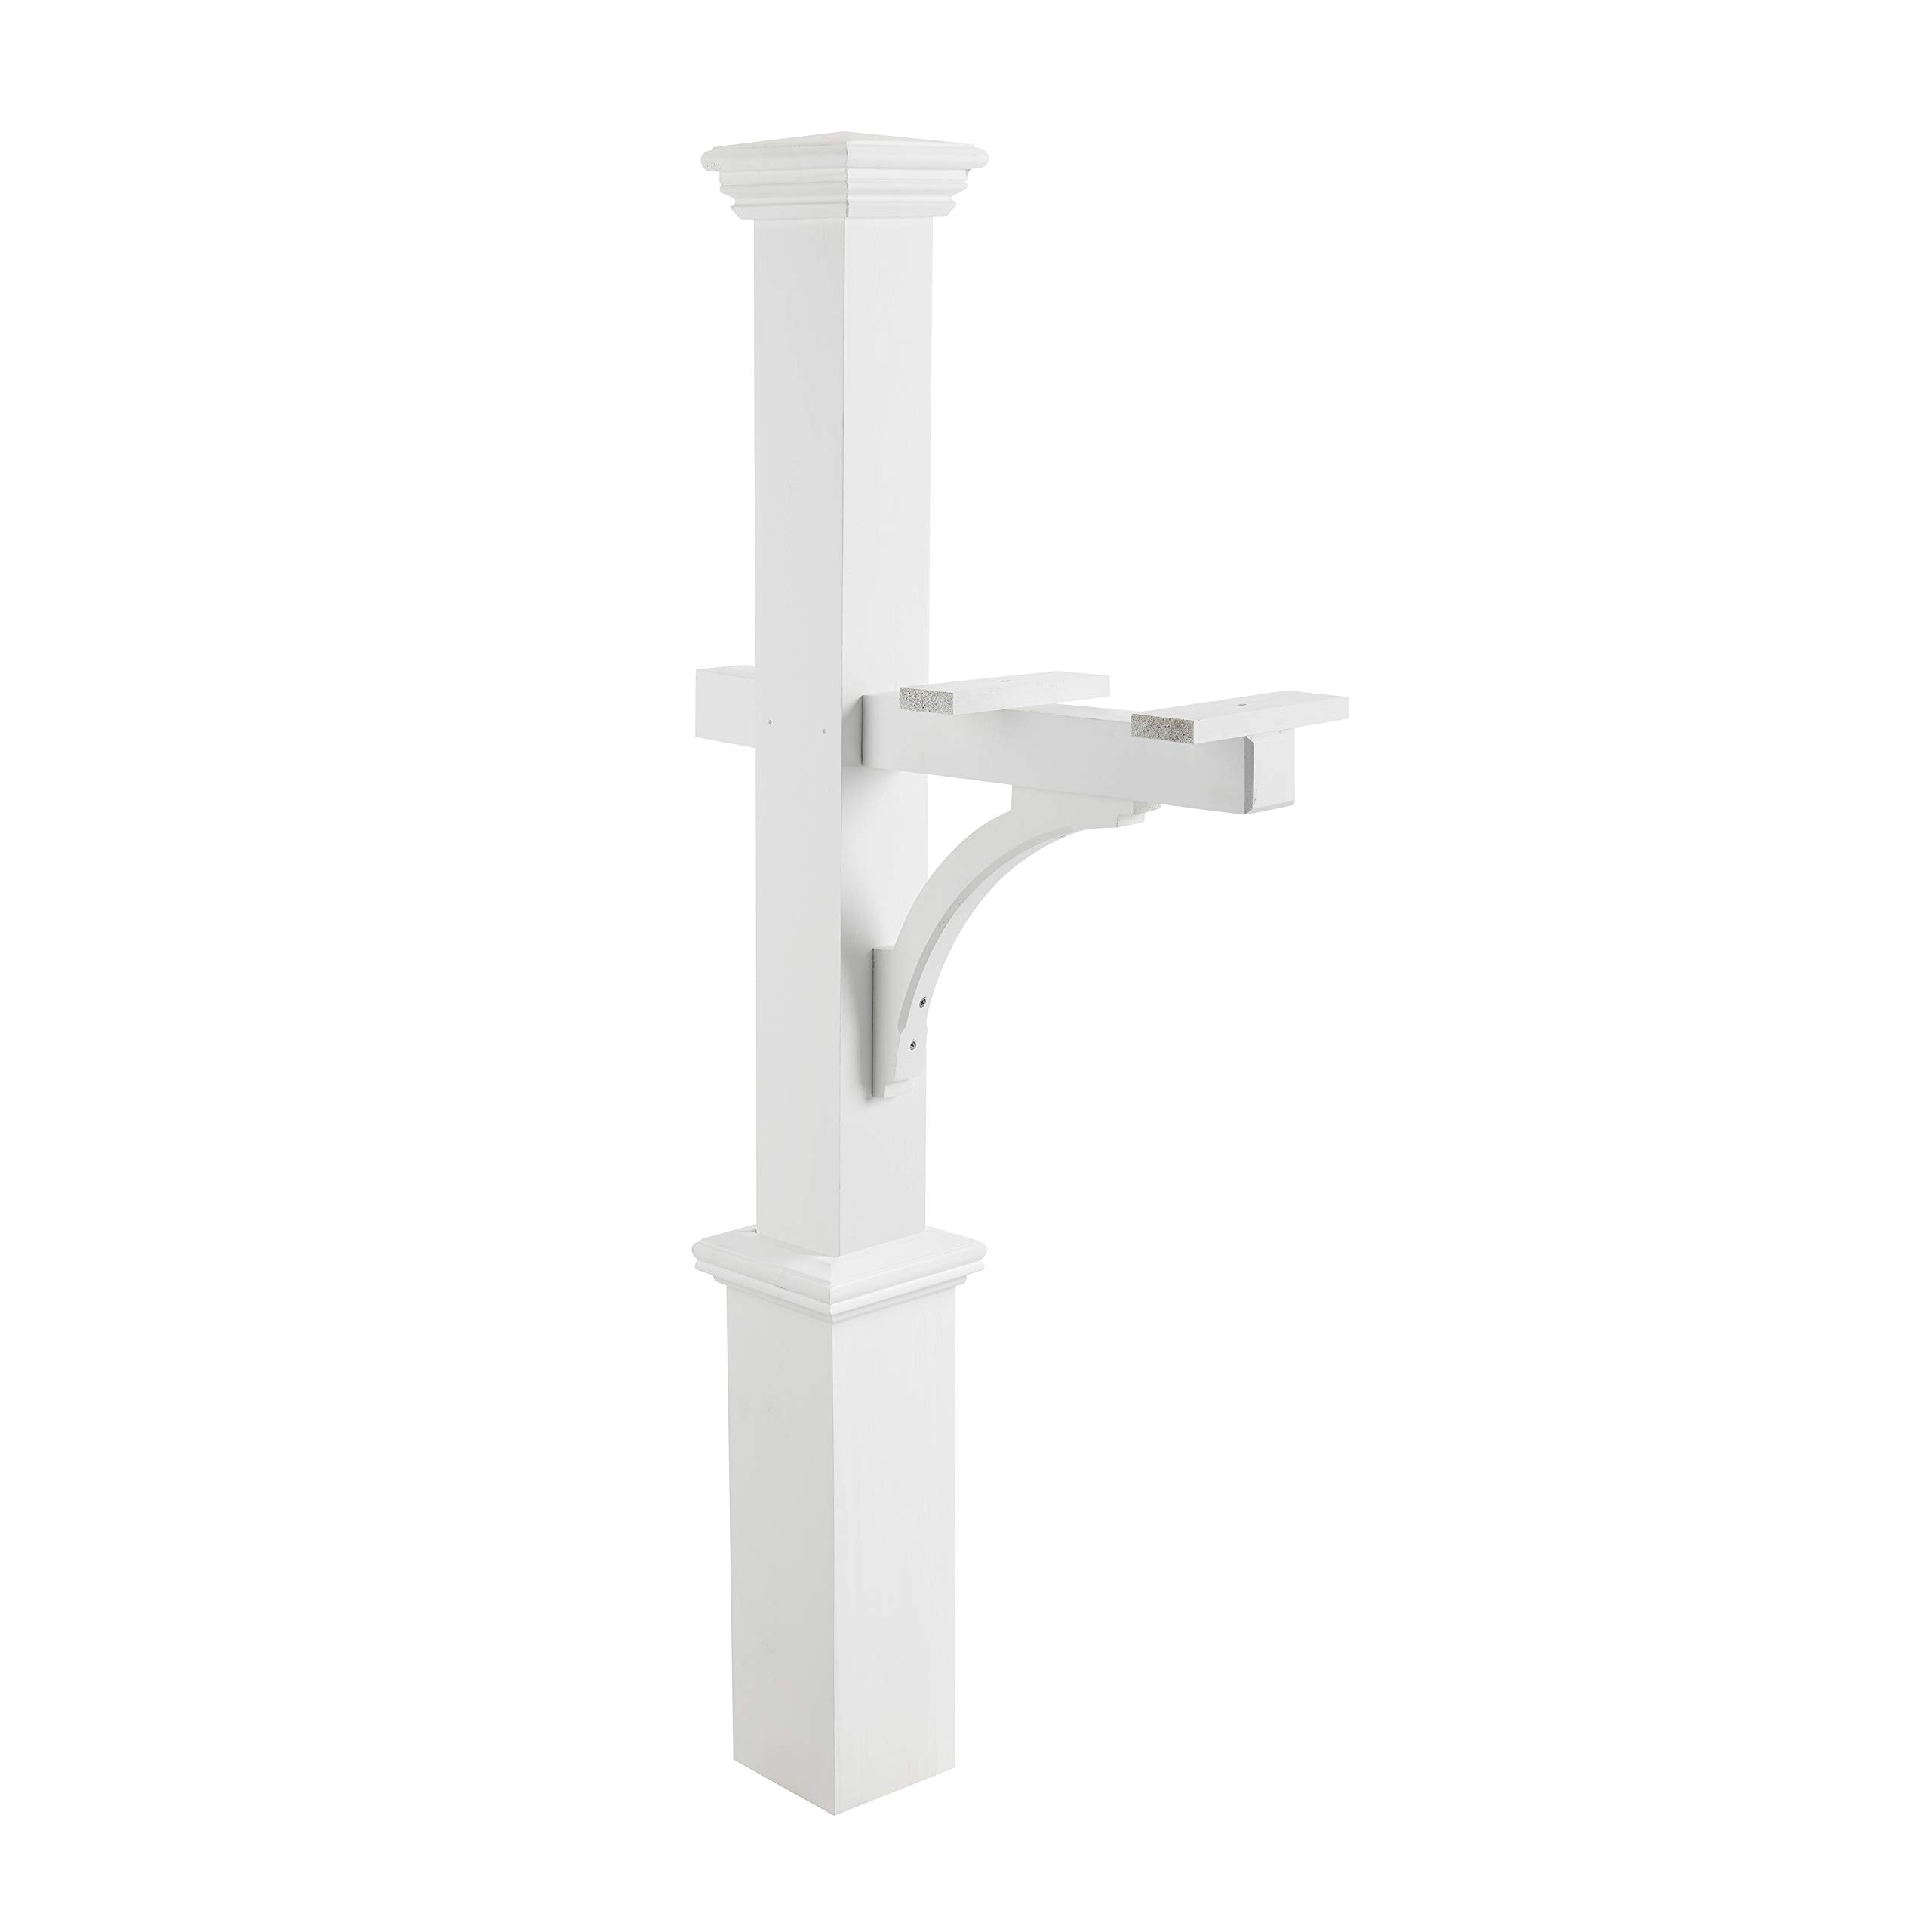 Good Directions 999204 Mailbox Post, One Size, White by Good Directions